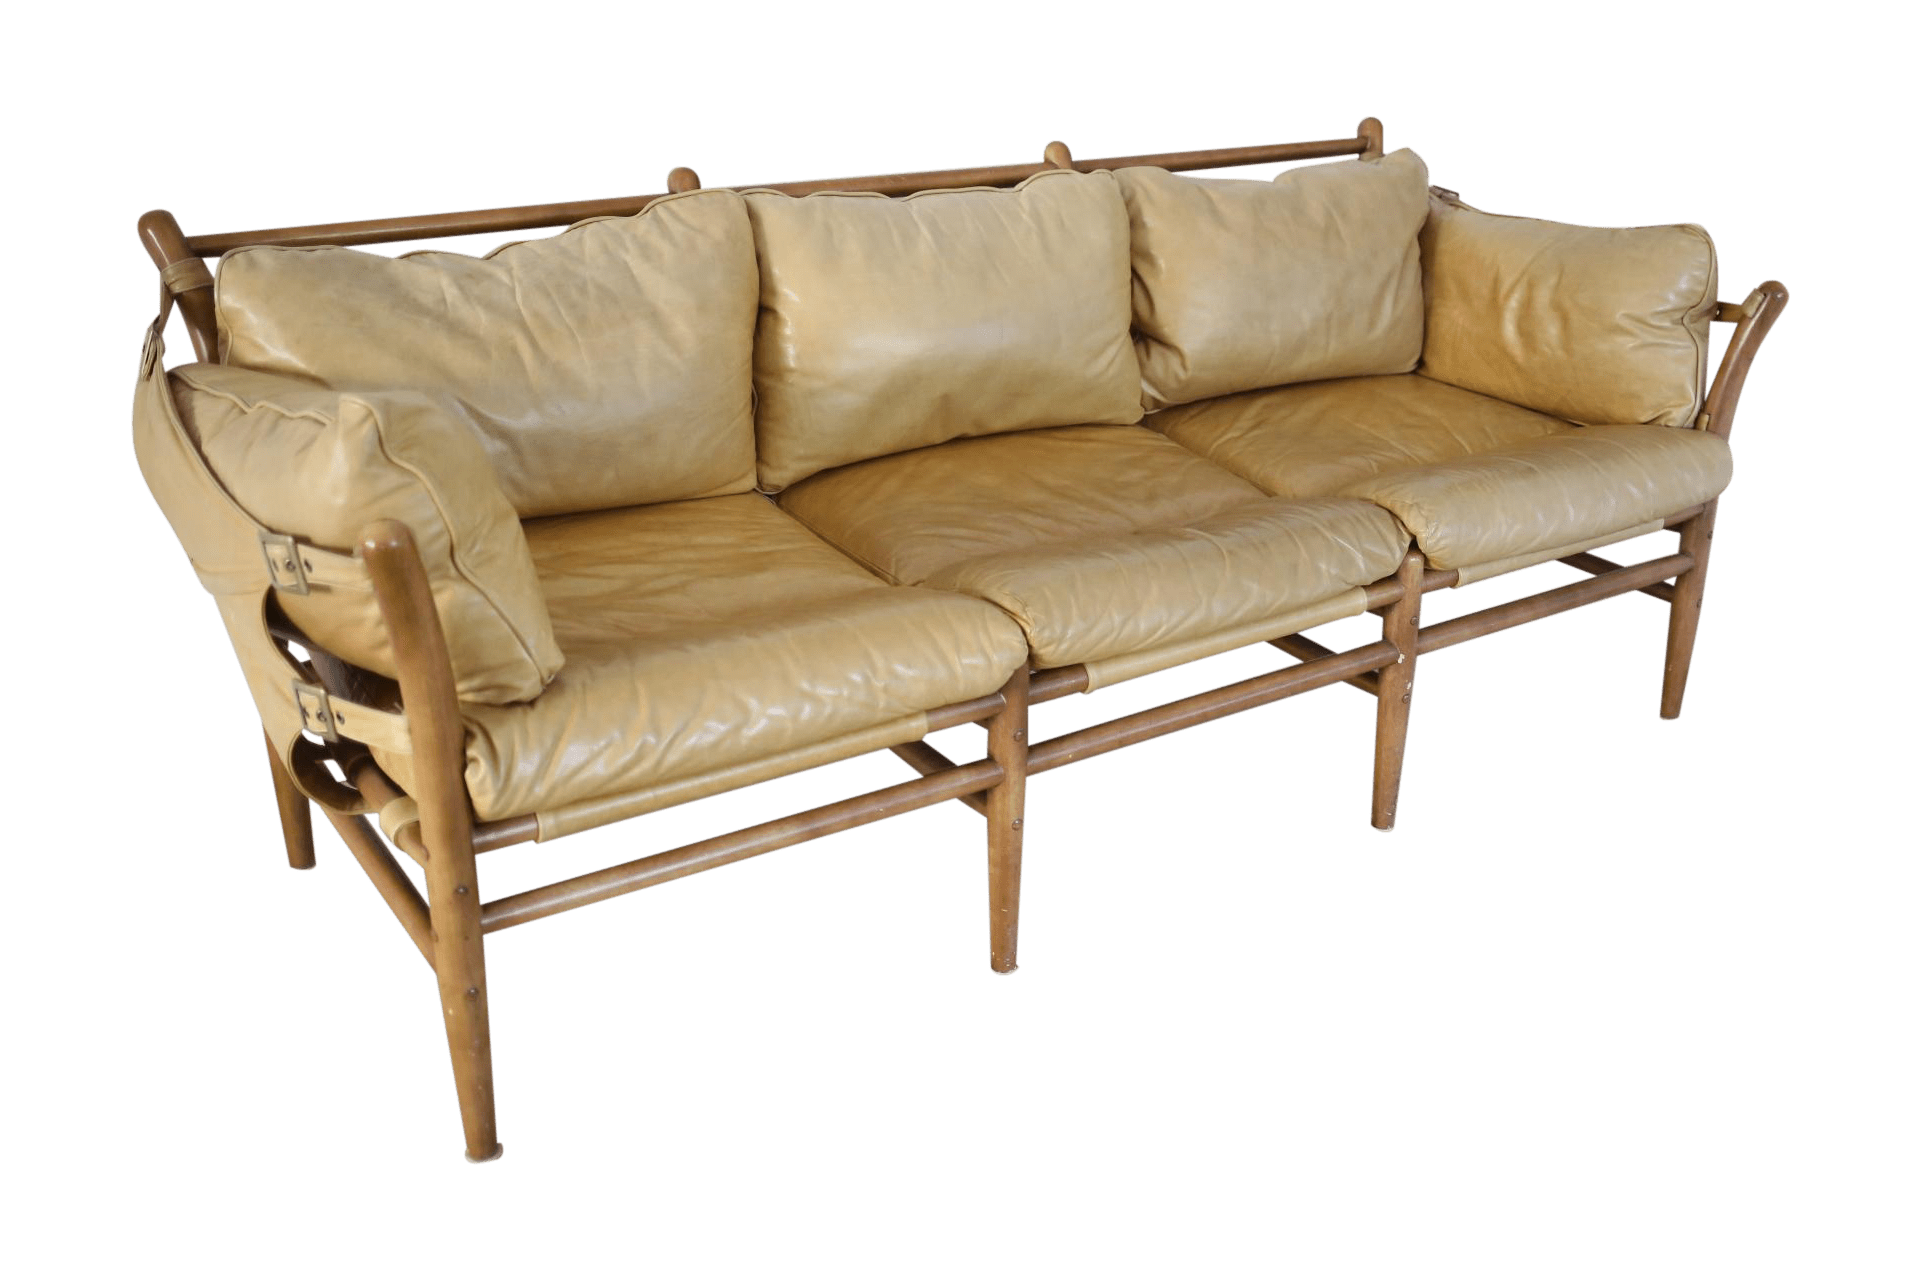 hickory chair leather couch ciao baby travel high safari sofa from anthropologie | chairish